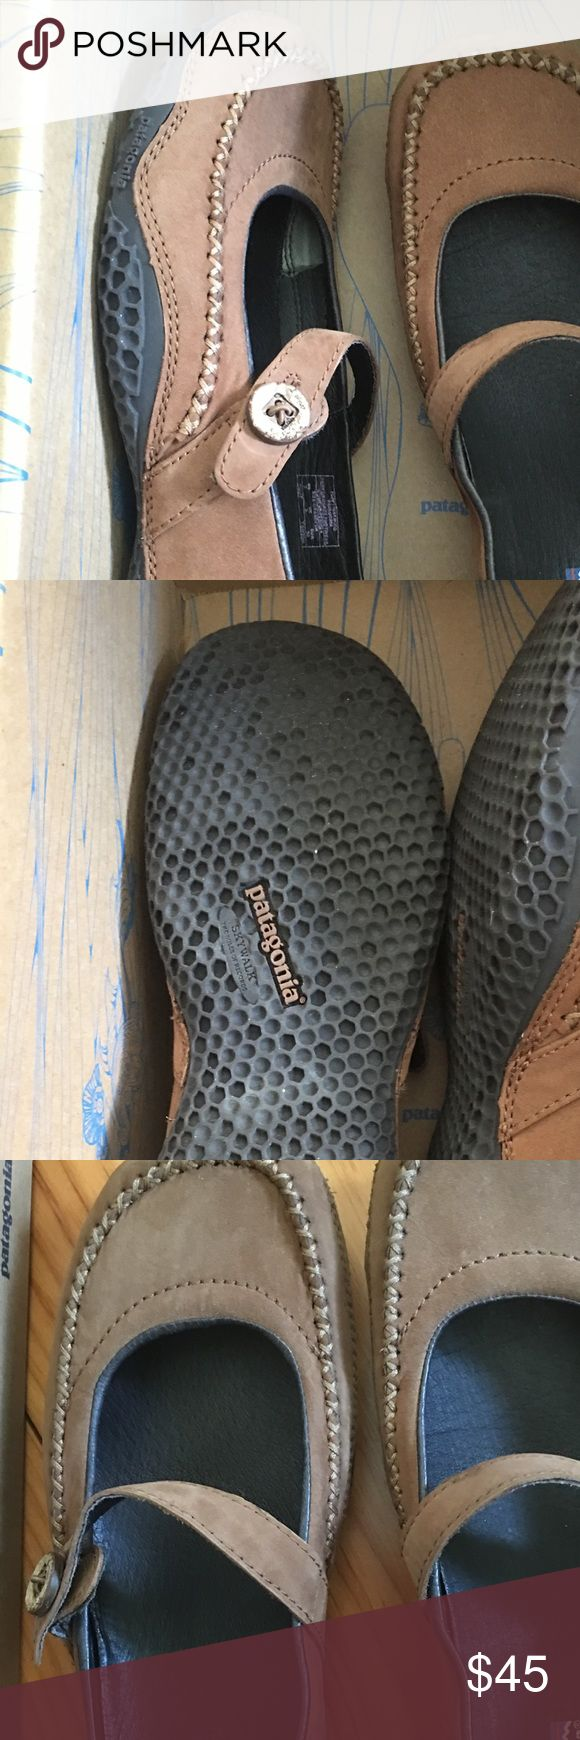 Patagonia shoes 7 NWT size 7 women's shoes (due to shipping will send without Box) Patagonia Shoes Flats & Loafers